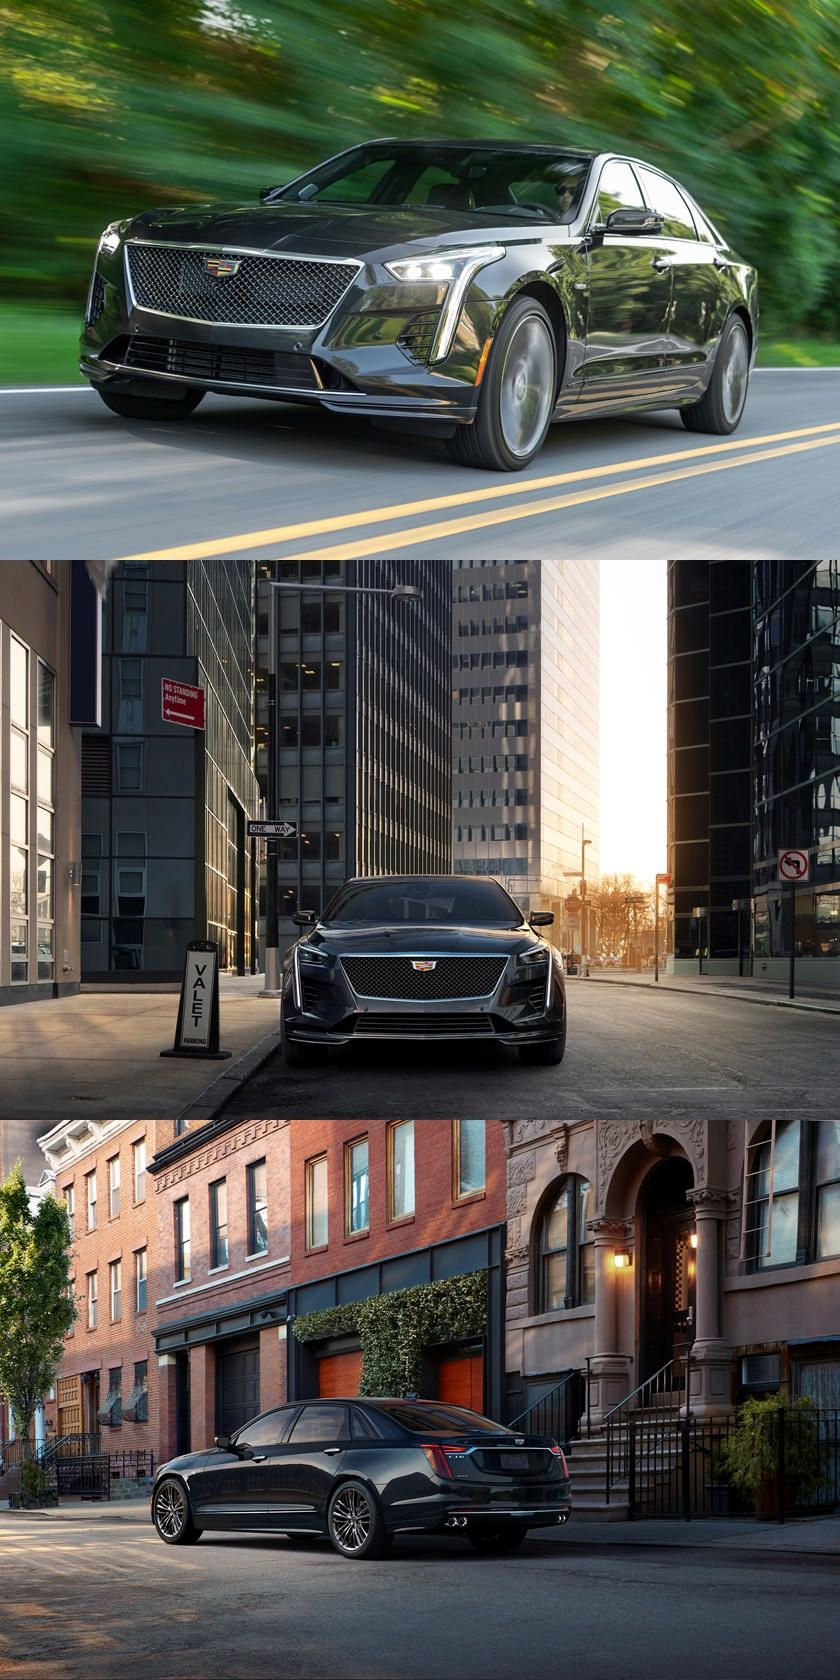 22 Gm Vehicles Will Soon Rival Tesla Autopilot By 2023 Another 22 Gm Nameplates Will Offer Super Cruise Capability Tesla Vehicles Onboard Camera